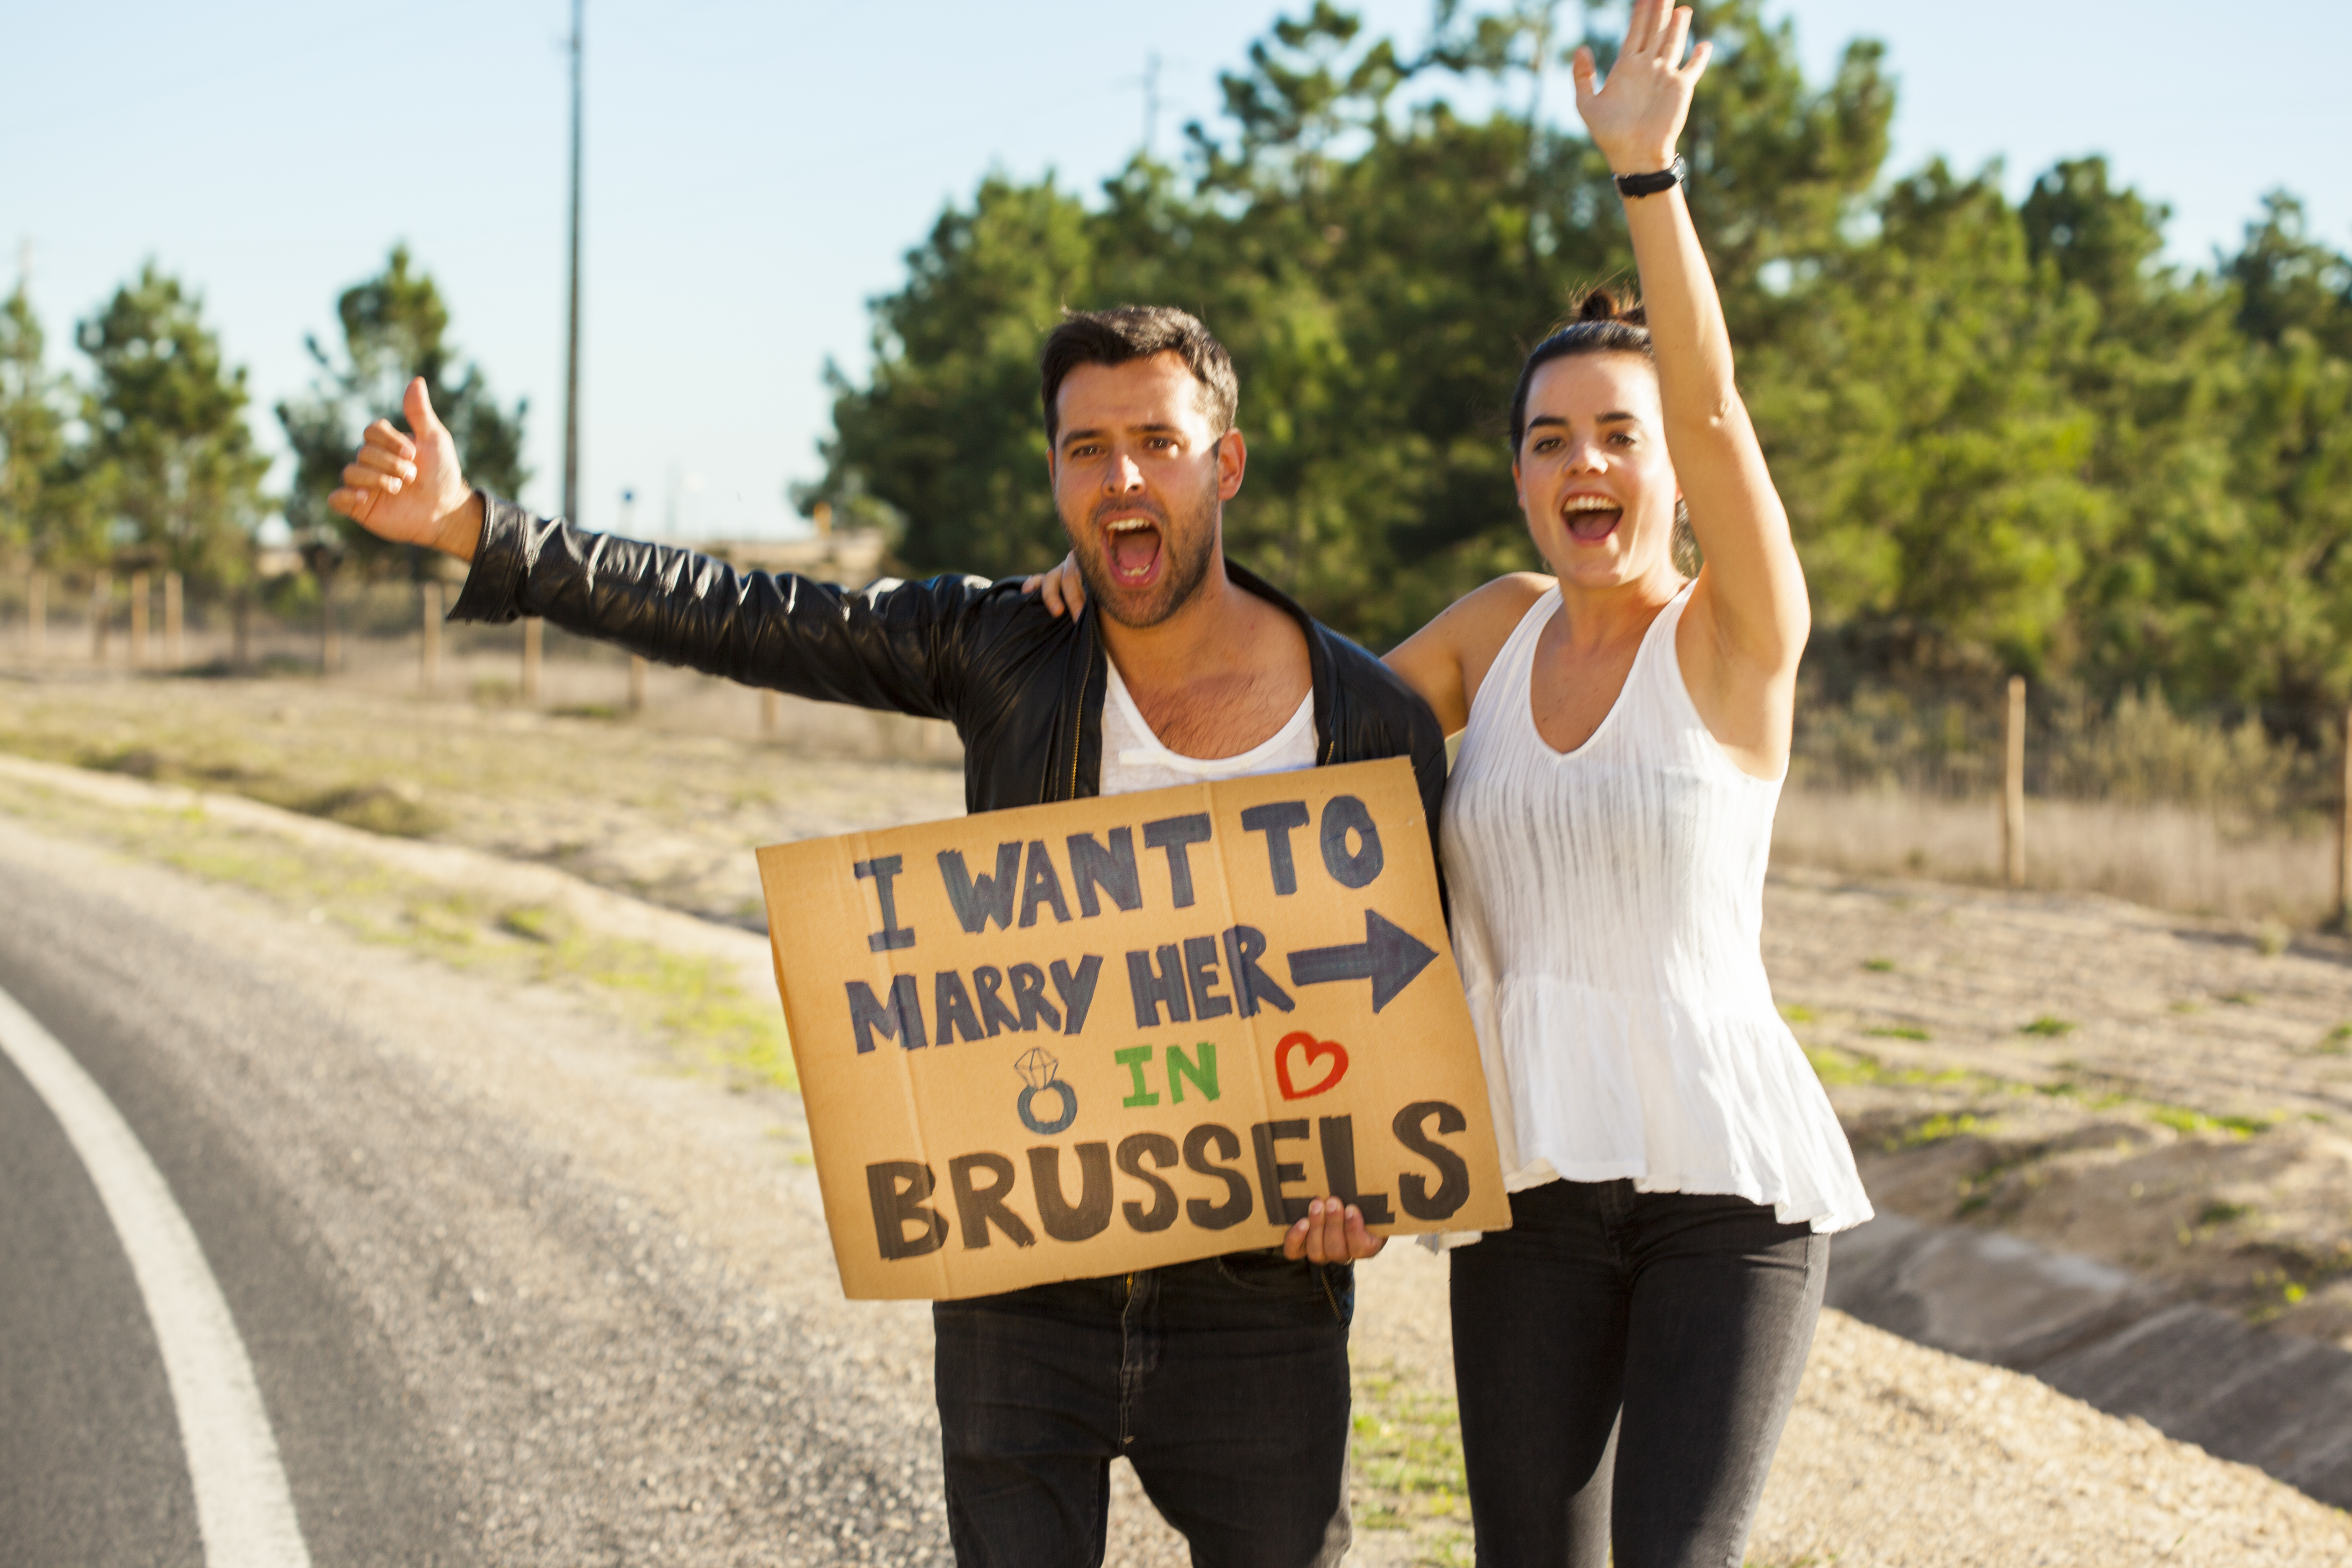 i-want-to-marry-her-in-brussels